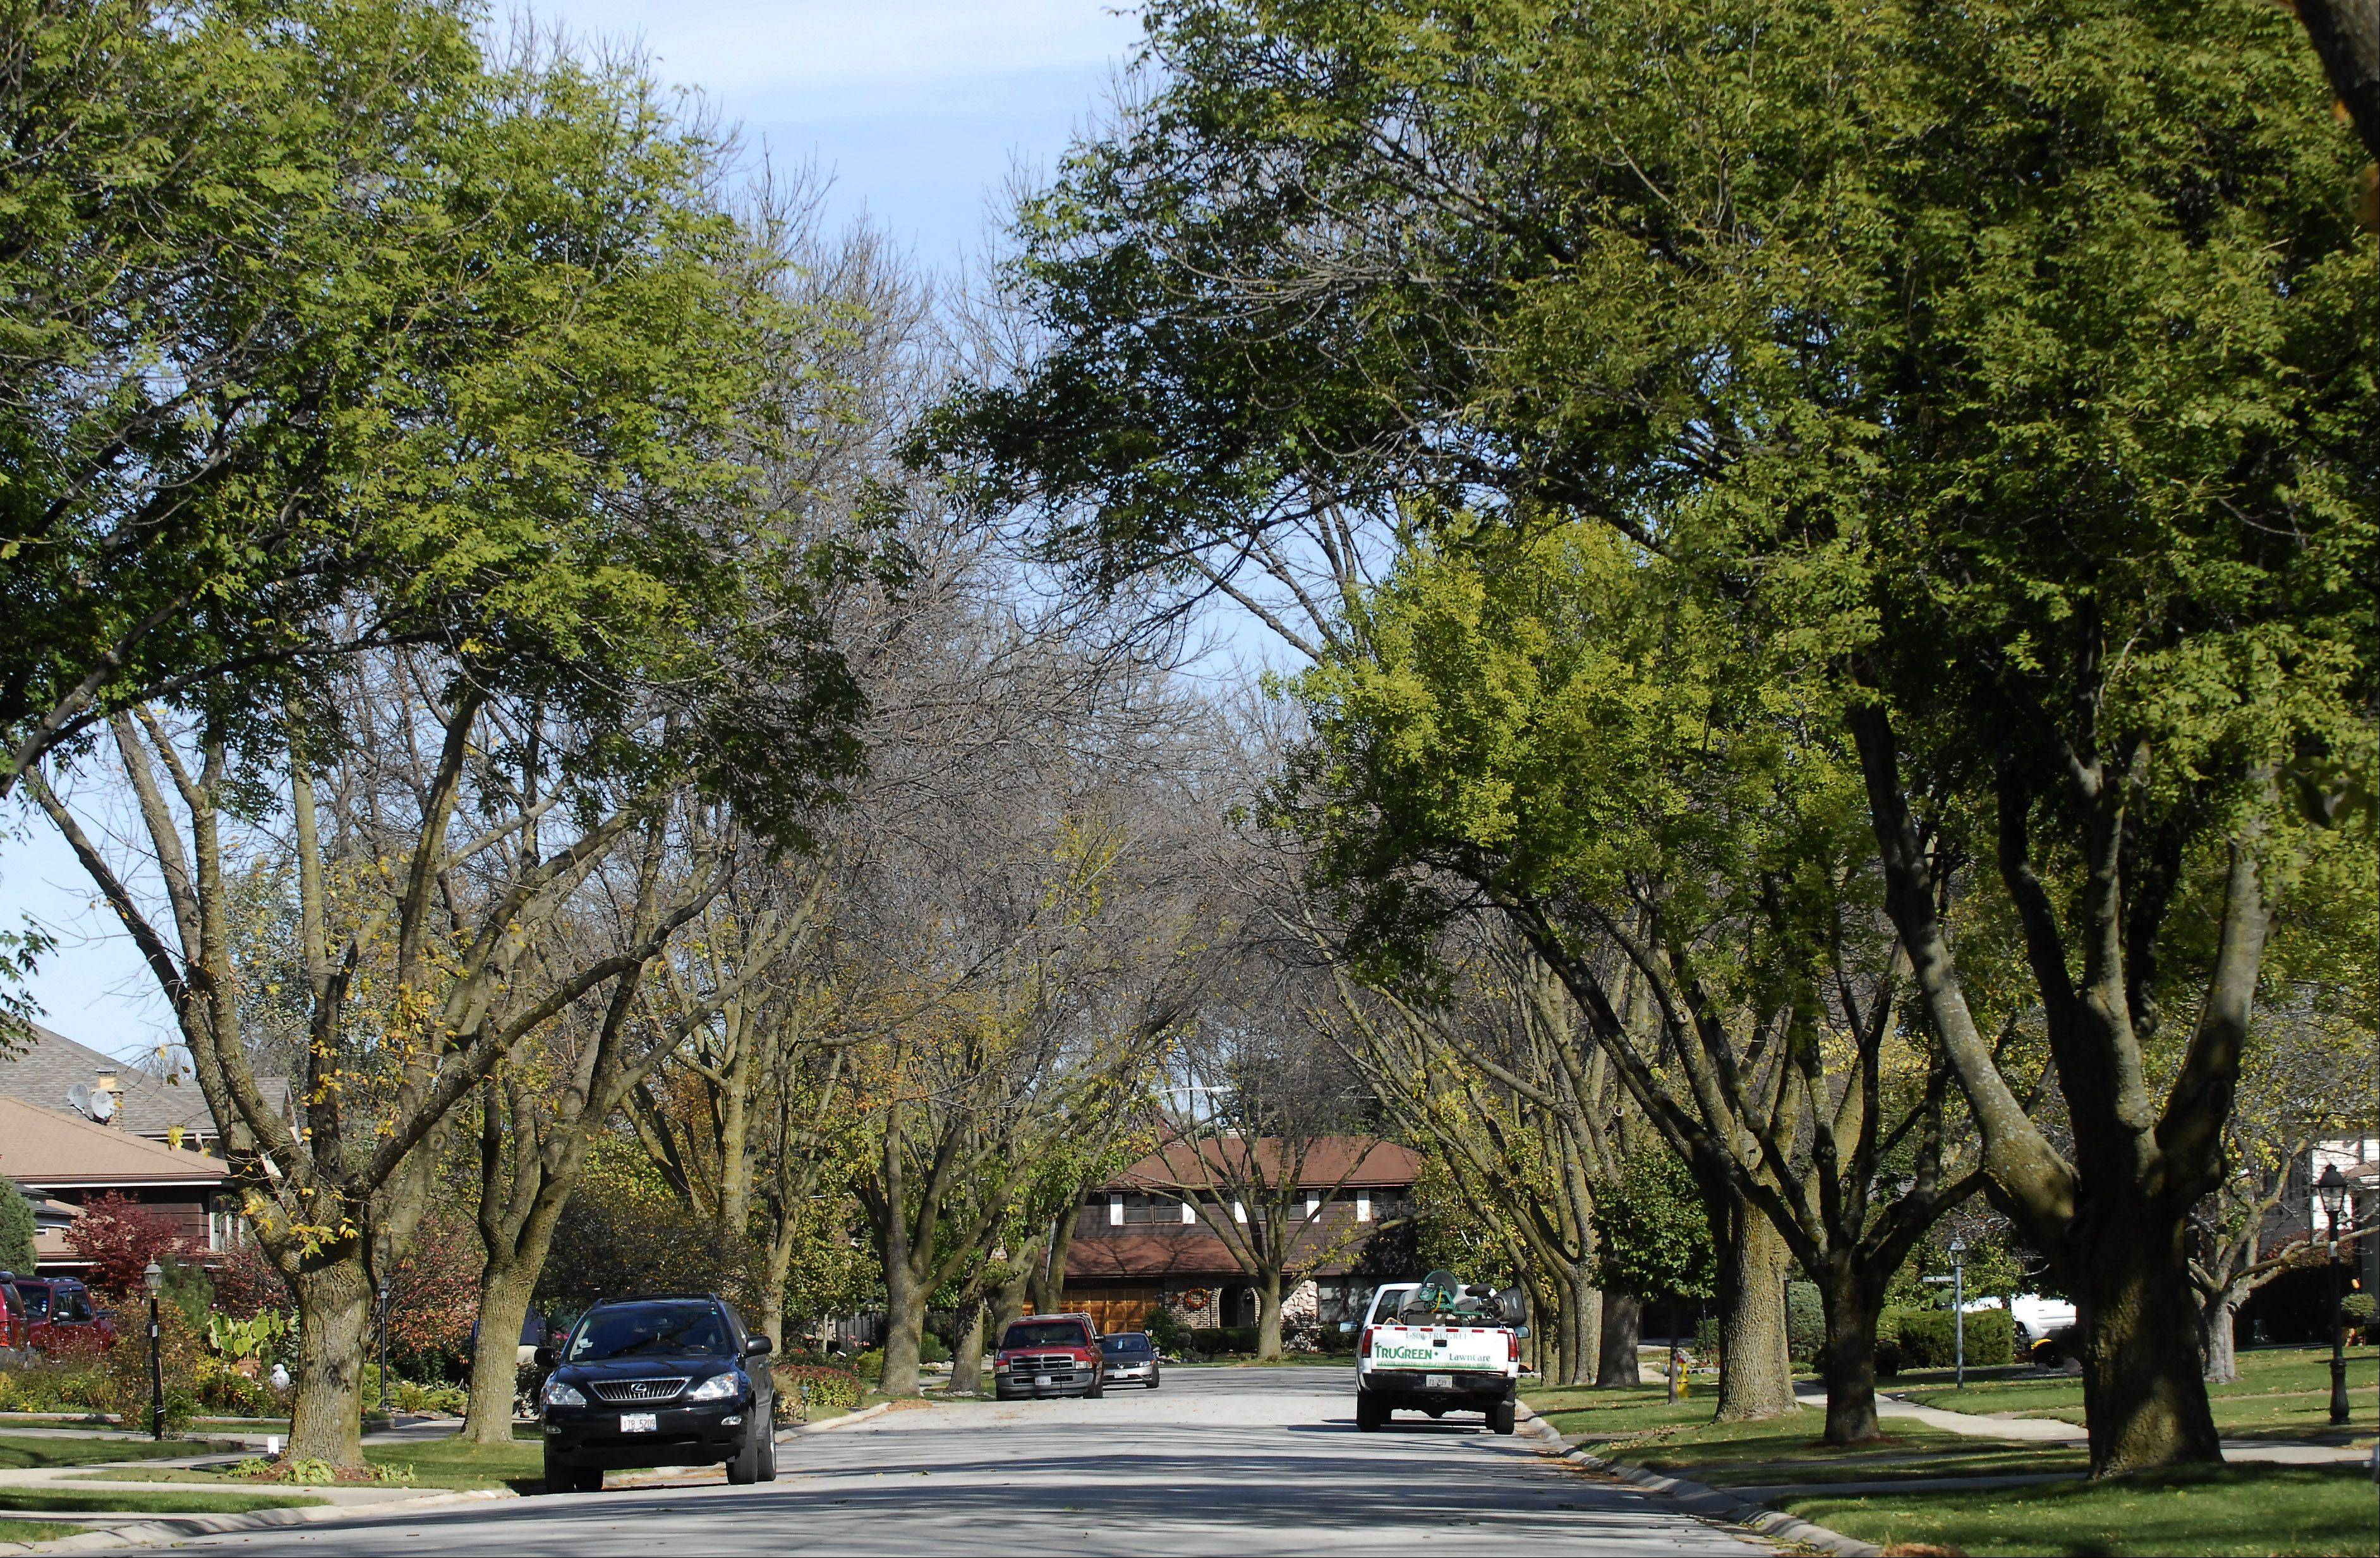 Trees on Grace Drive in Mount Prospect form a canopy over the street. A report presented this week to village officials as part of the community's updated urban forest management plan found that the value of parkway trees in town is about $118 million.